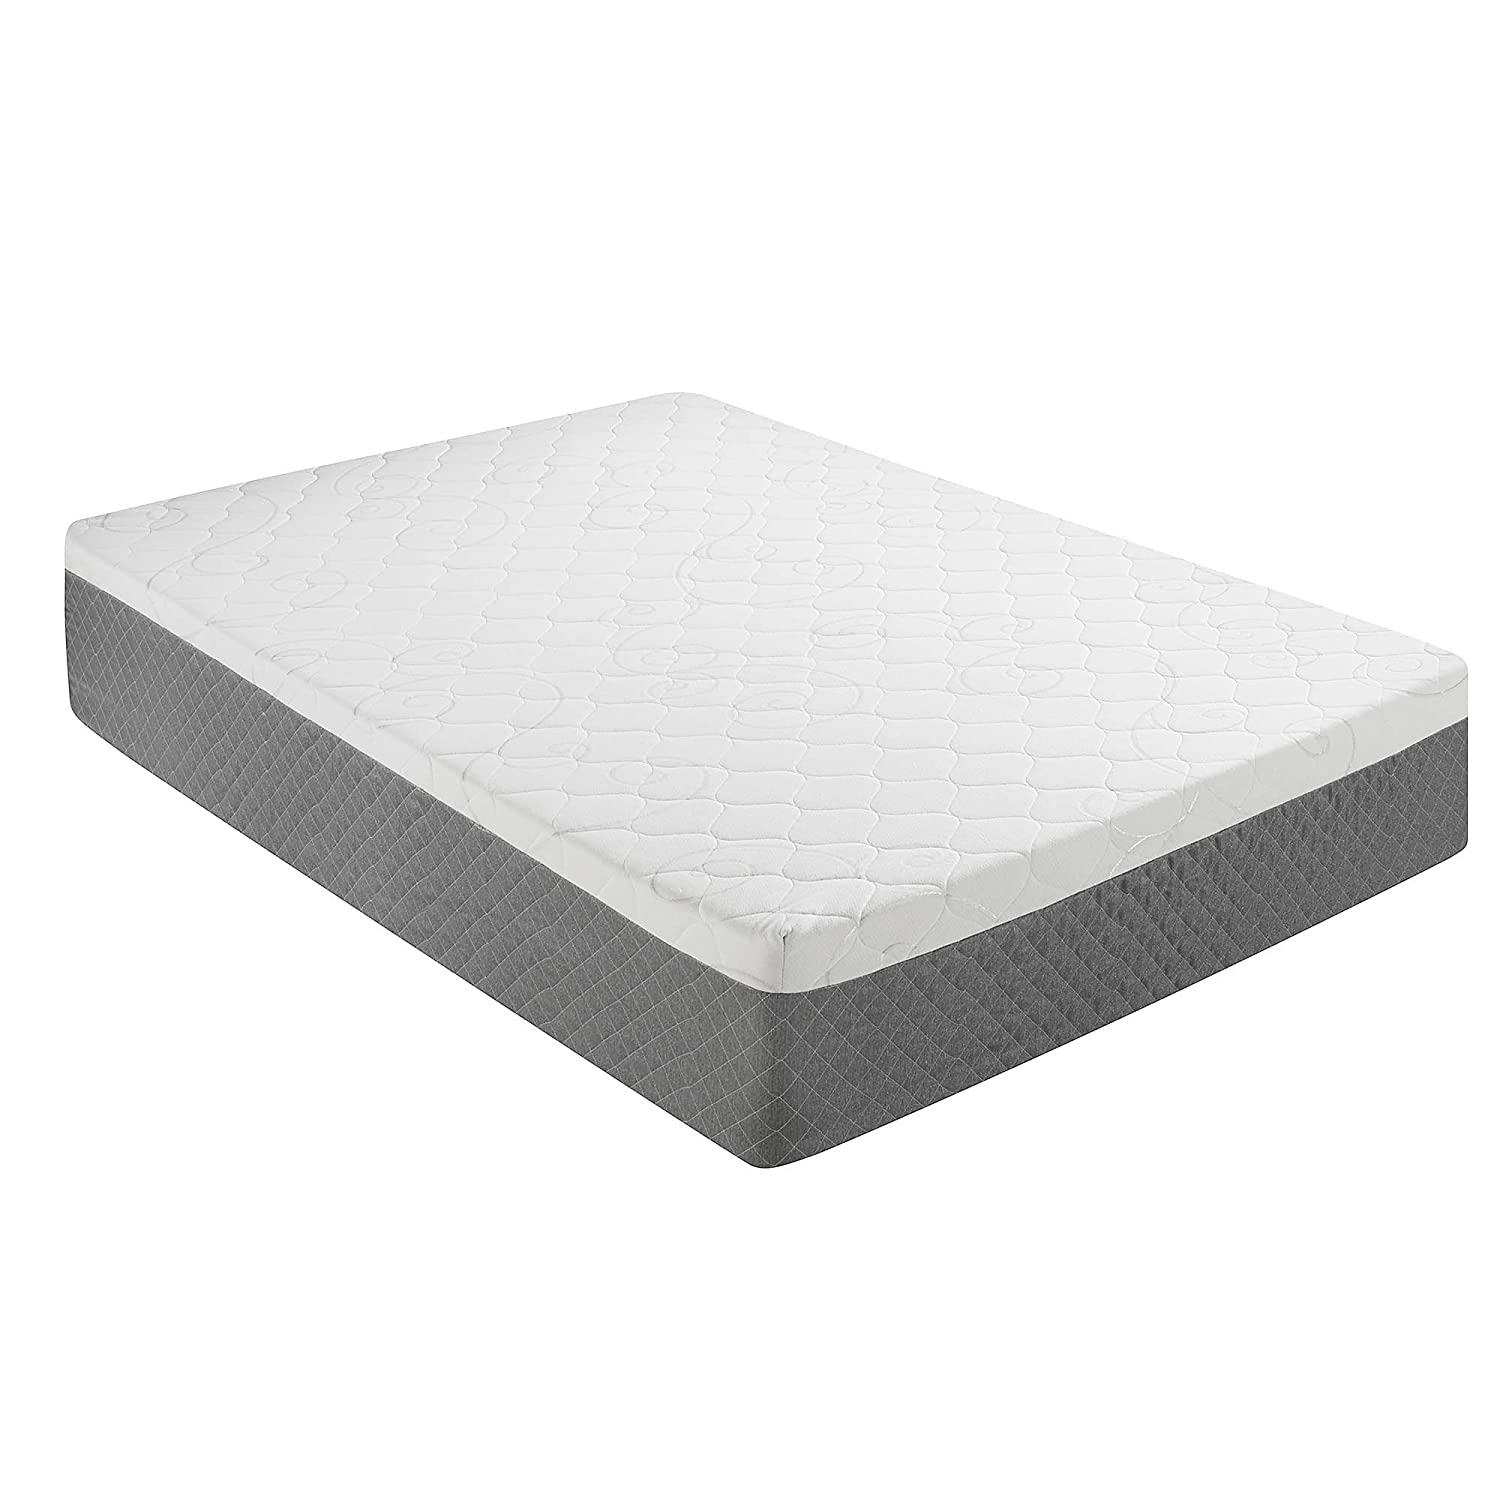 Sleep Innovations 14-Inch Memory Foam Mattress, Queen